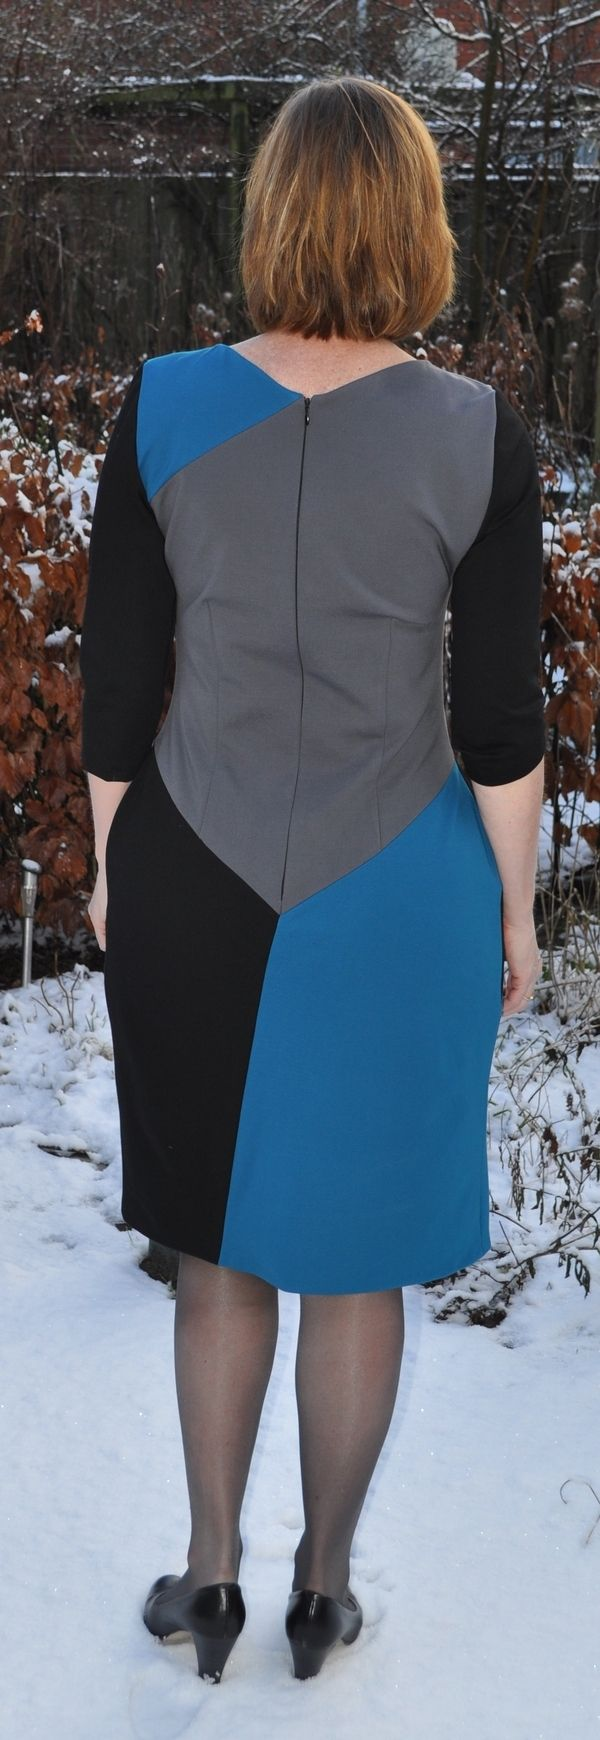 Sewing Patterns - Pattern Reviews for Self Drafted Pattern Pattern - 78803-1005 knock-off dress - Sewing & Sewing Pattern Reviews at PatternReview.com